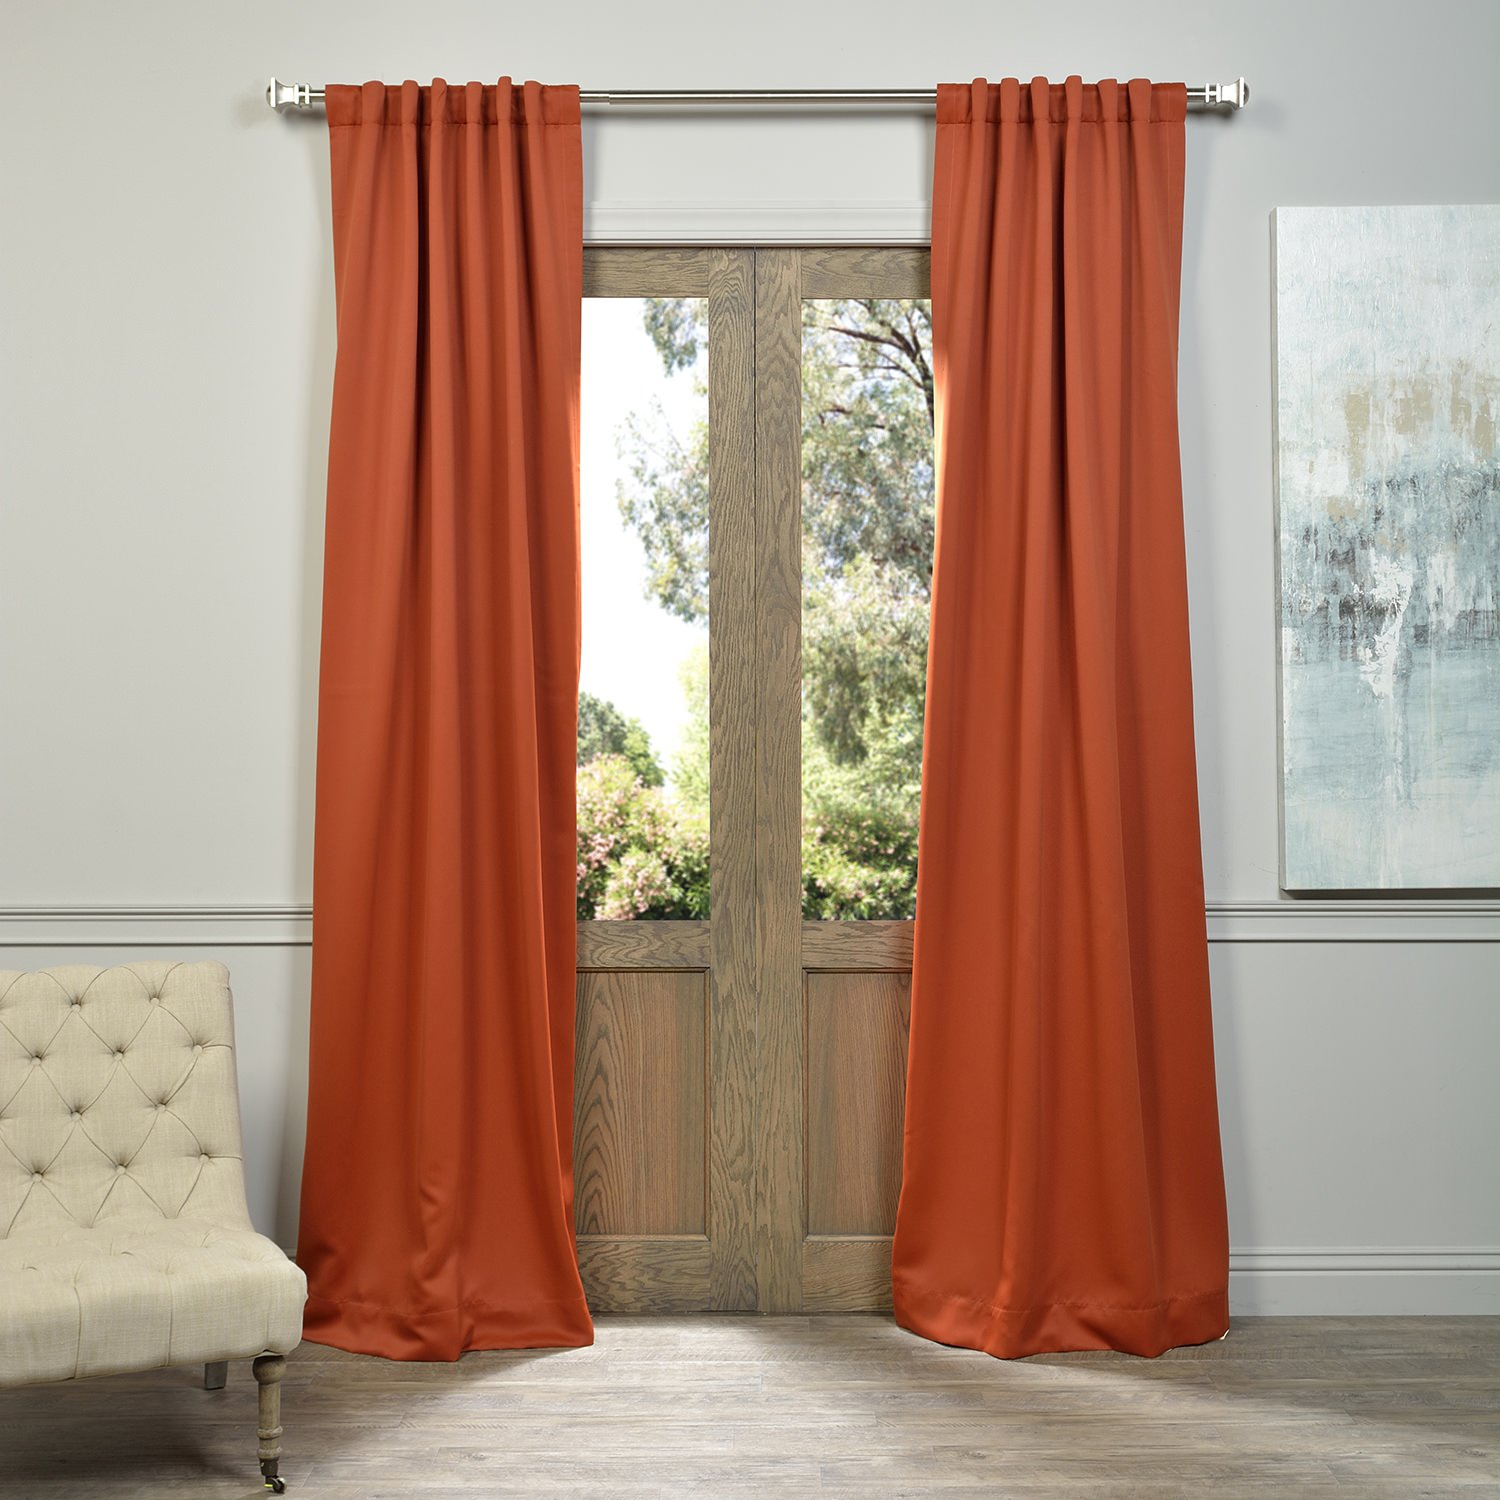 Half Price Drapes Blackout Curtain, Blaze